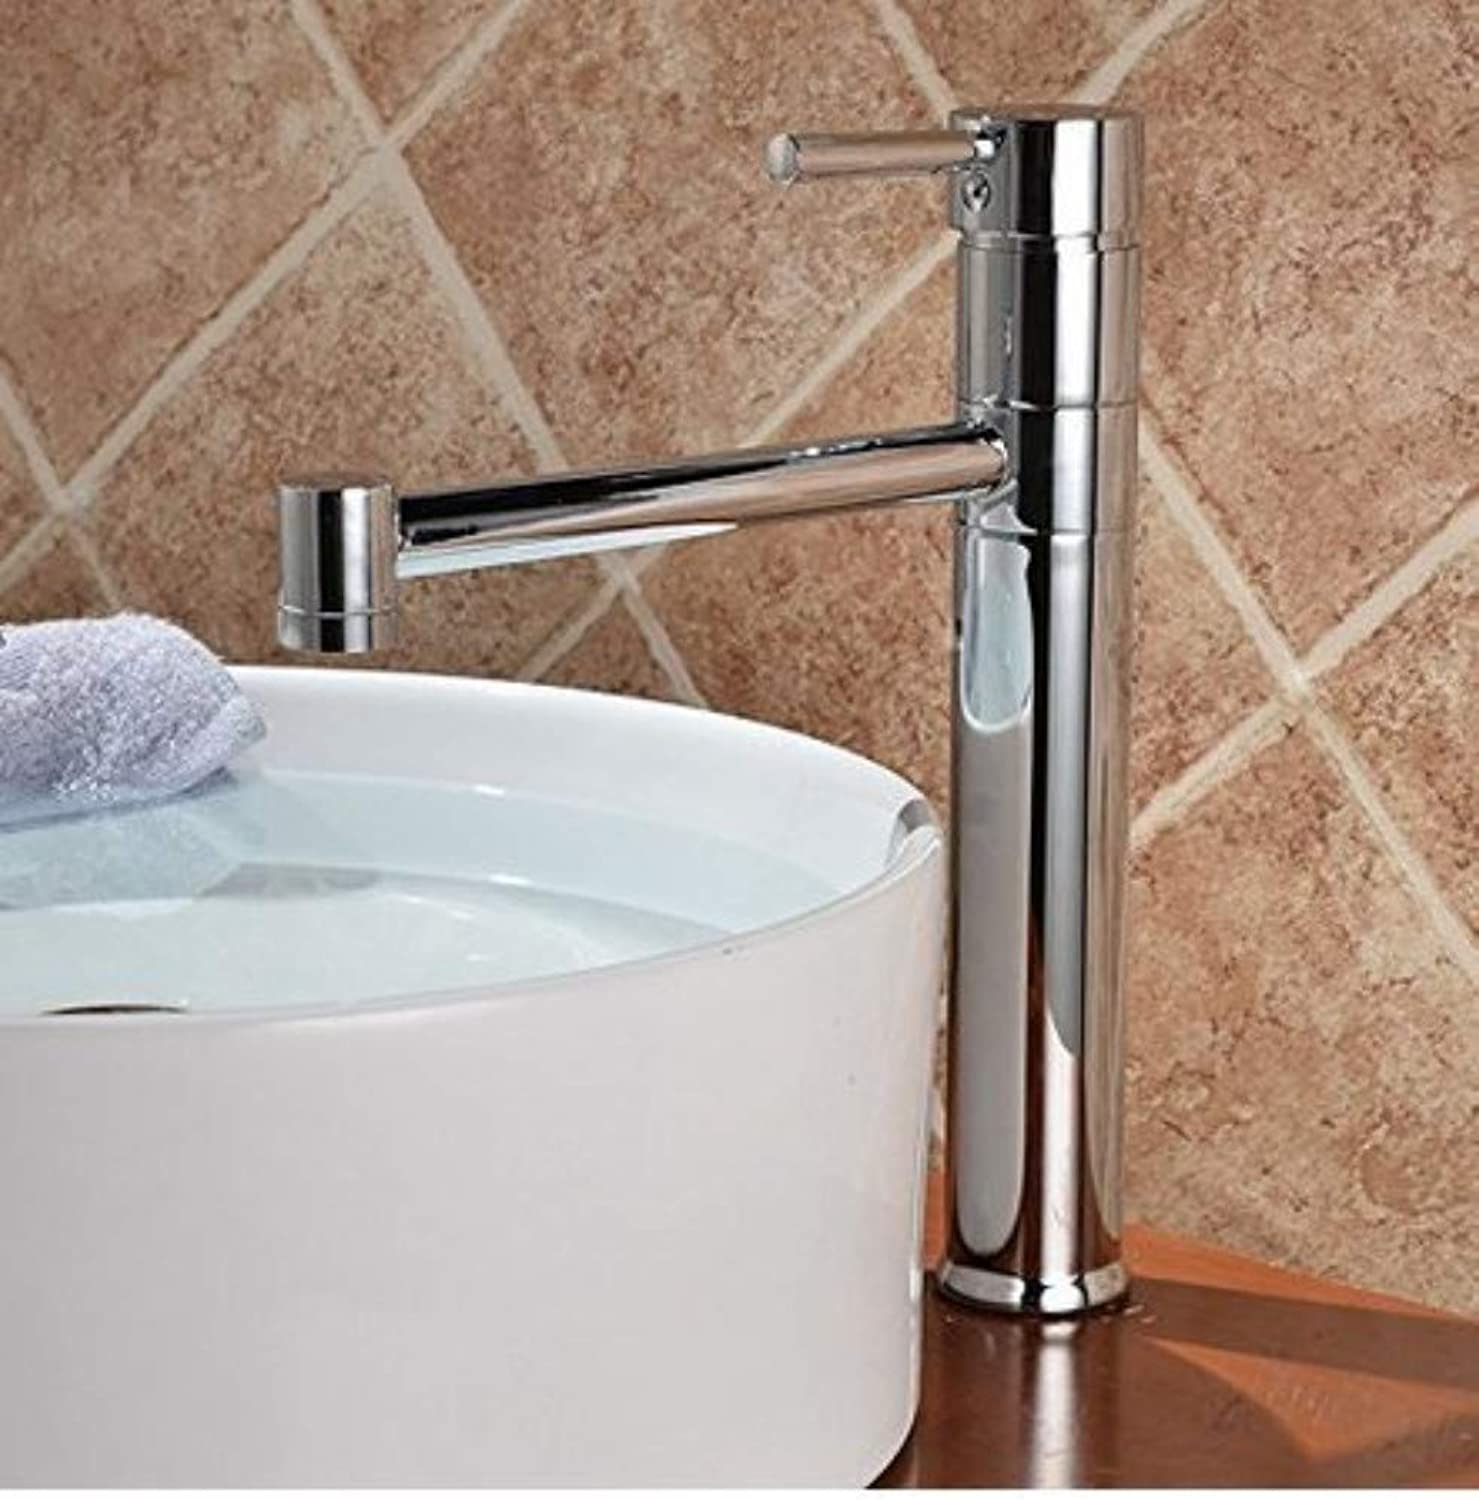 360° redating Faucet Retro Faucetbathroom Sink Taps Single Hole Hot and Cold Table Water Faucet